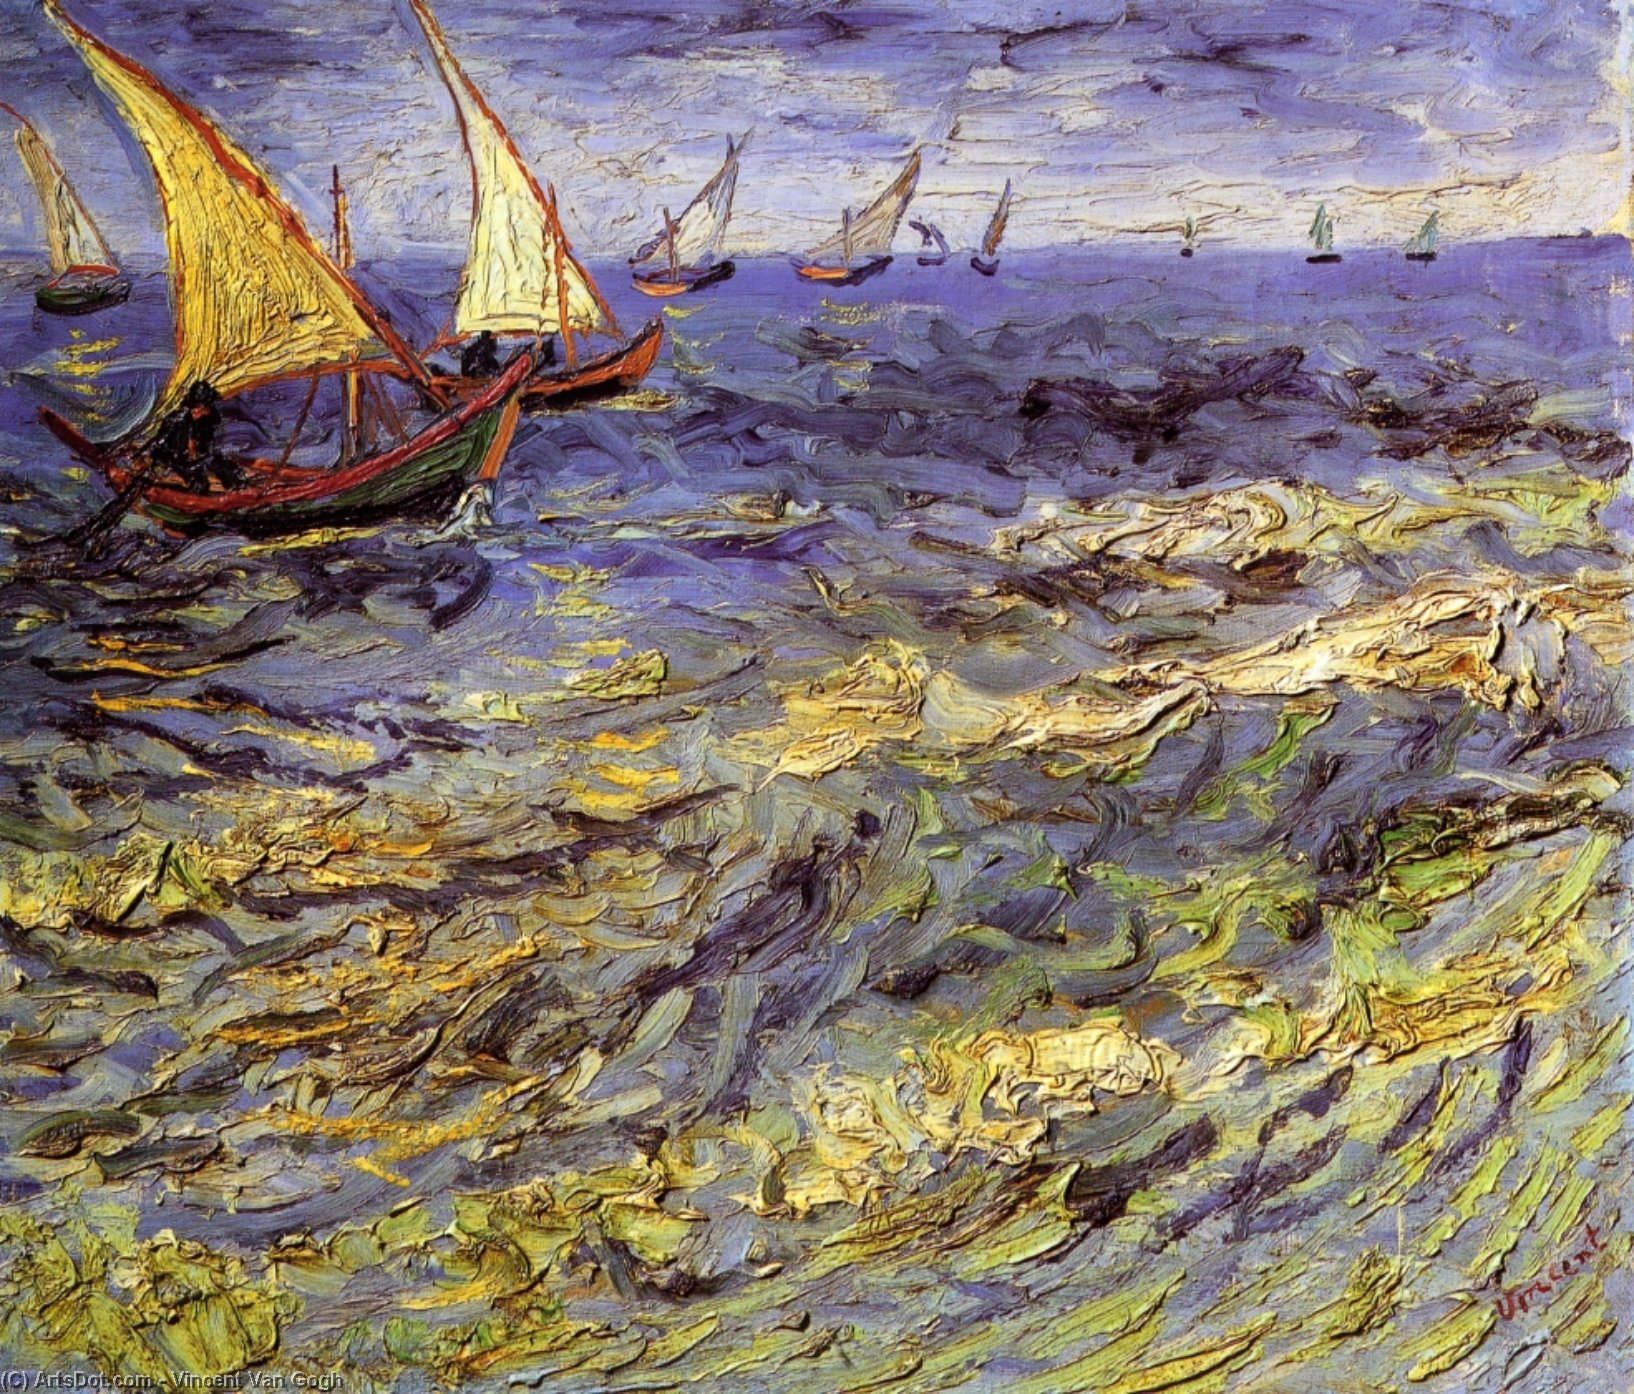 Wikioo.org - The Encyclopedia of Fine Arts - Painting, Artwork by Vincent Van Gogh - Fishing Boats at Sea (also known as Seascape at Saintes-Maries)